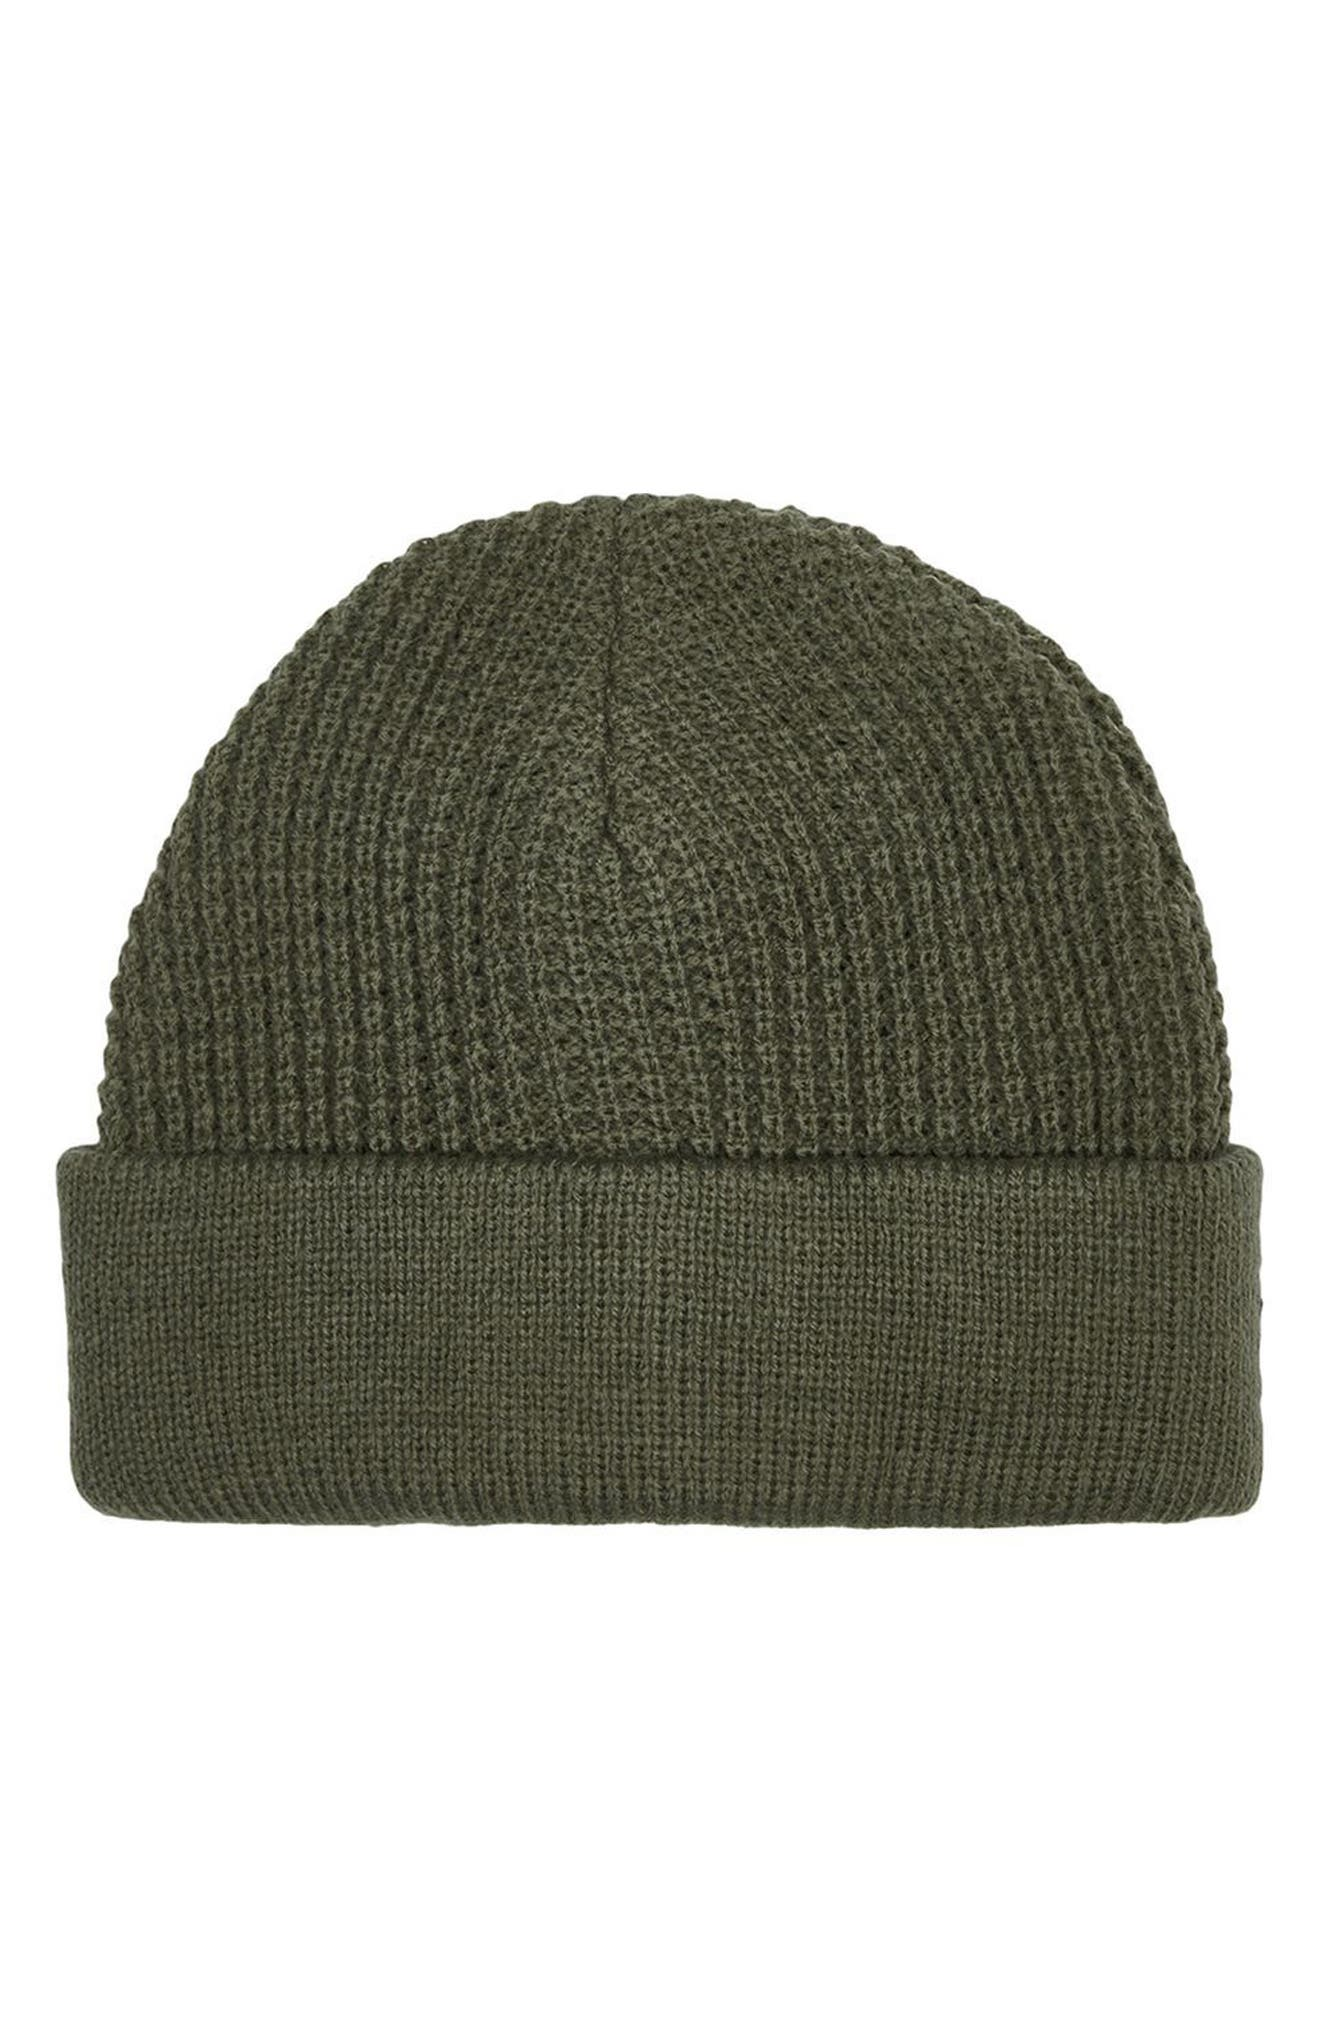 Knit Beanie,                         Main,                         color, Olive